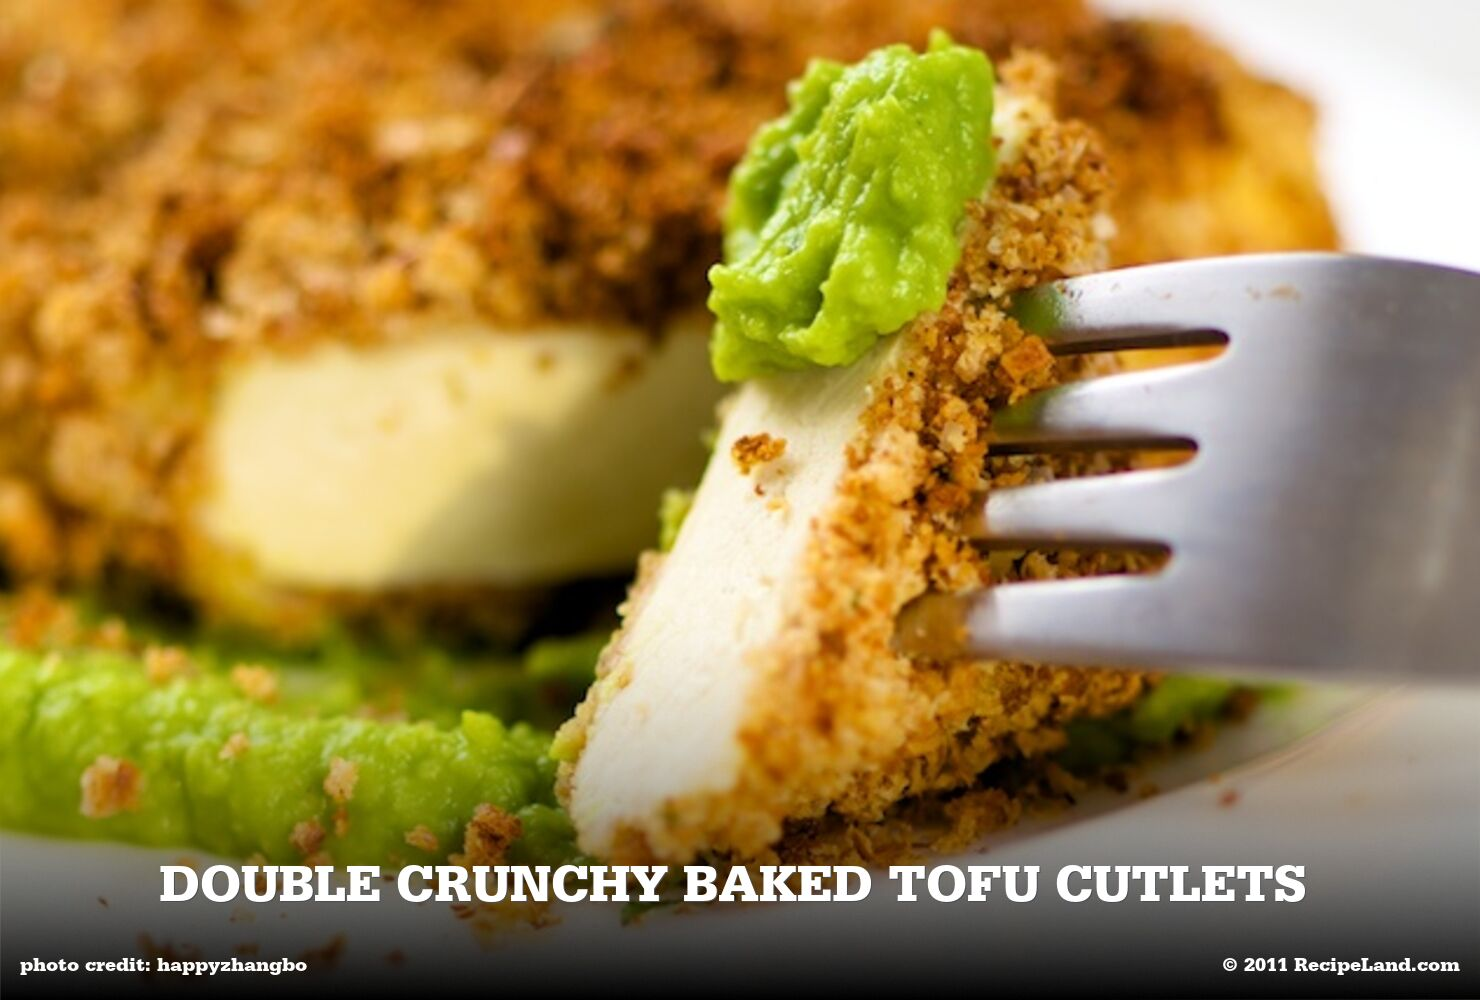 Double Crunchy Baked Tofu Cutlets